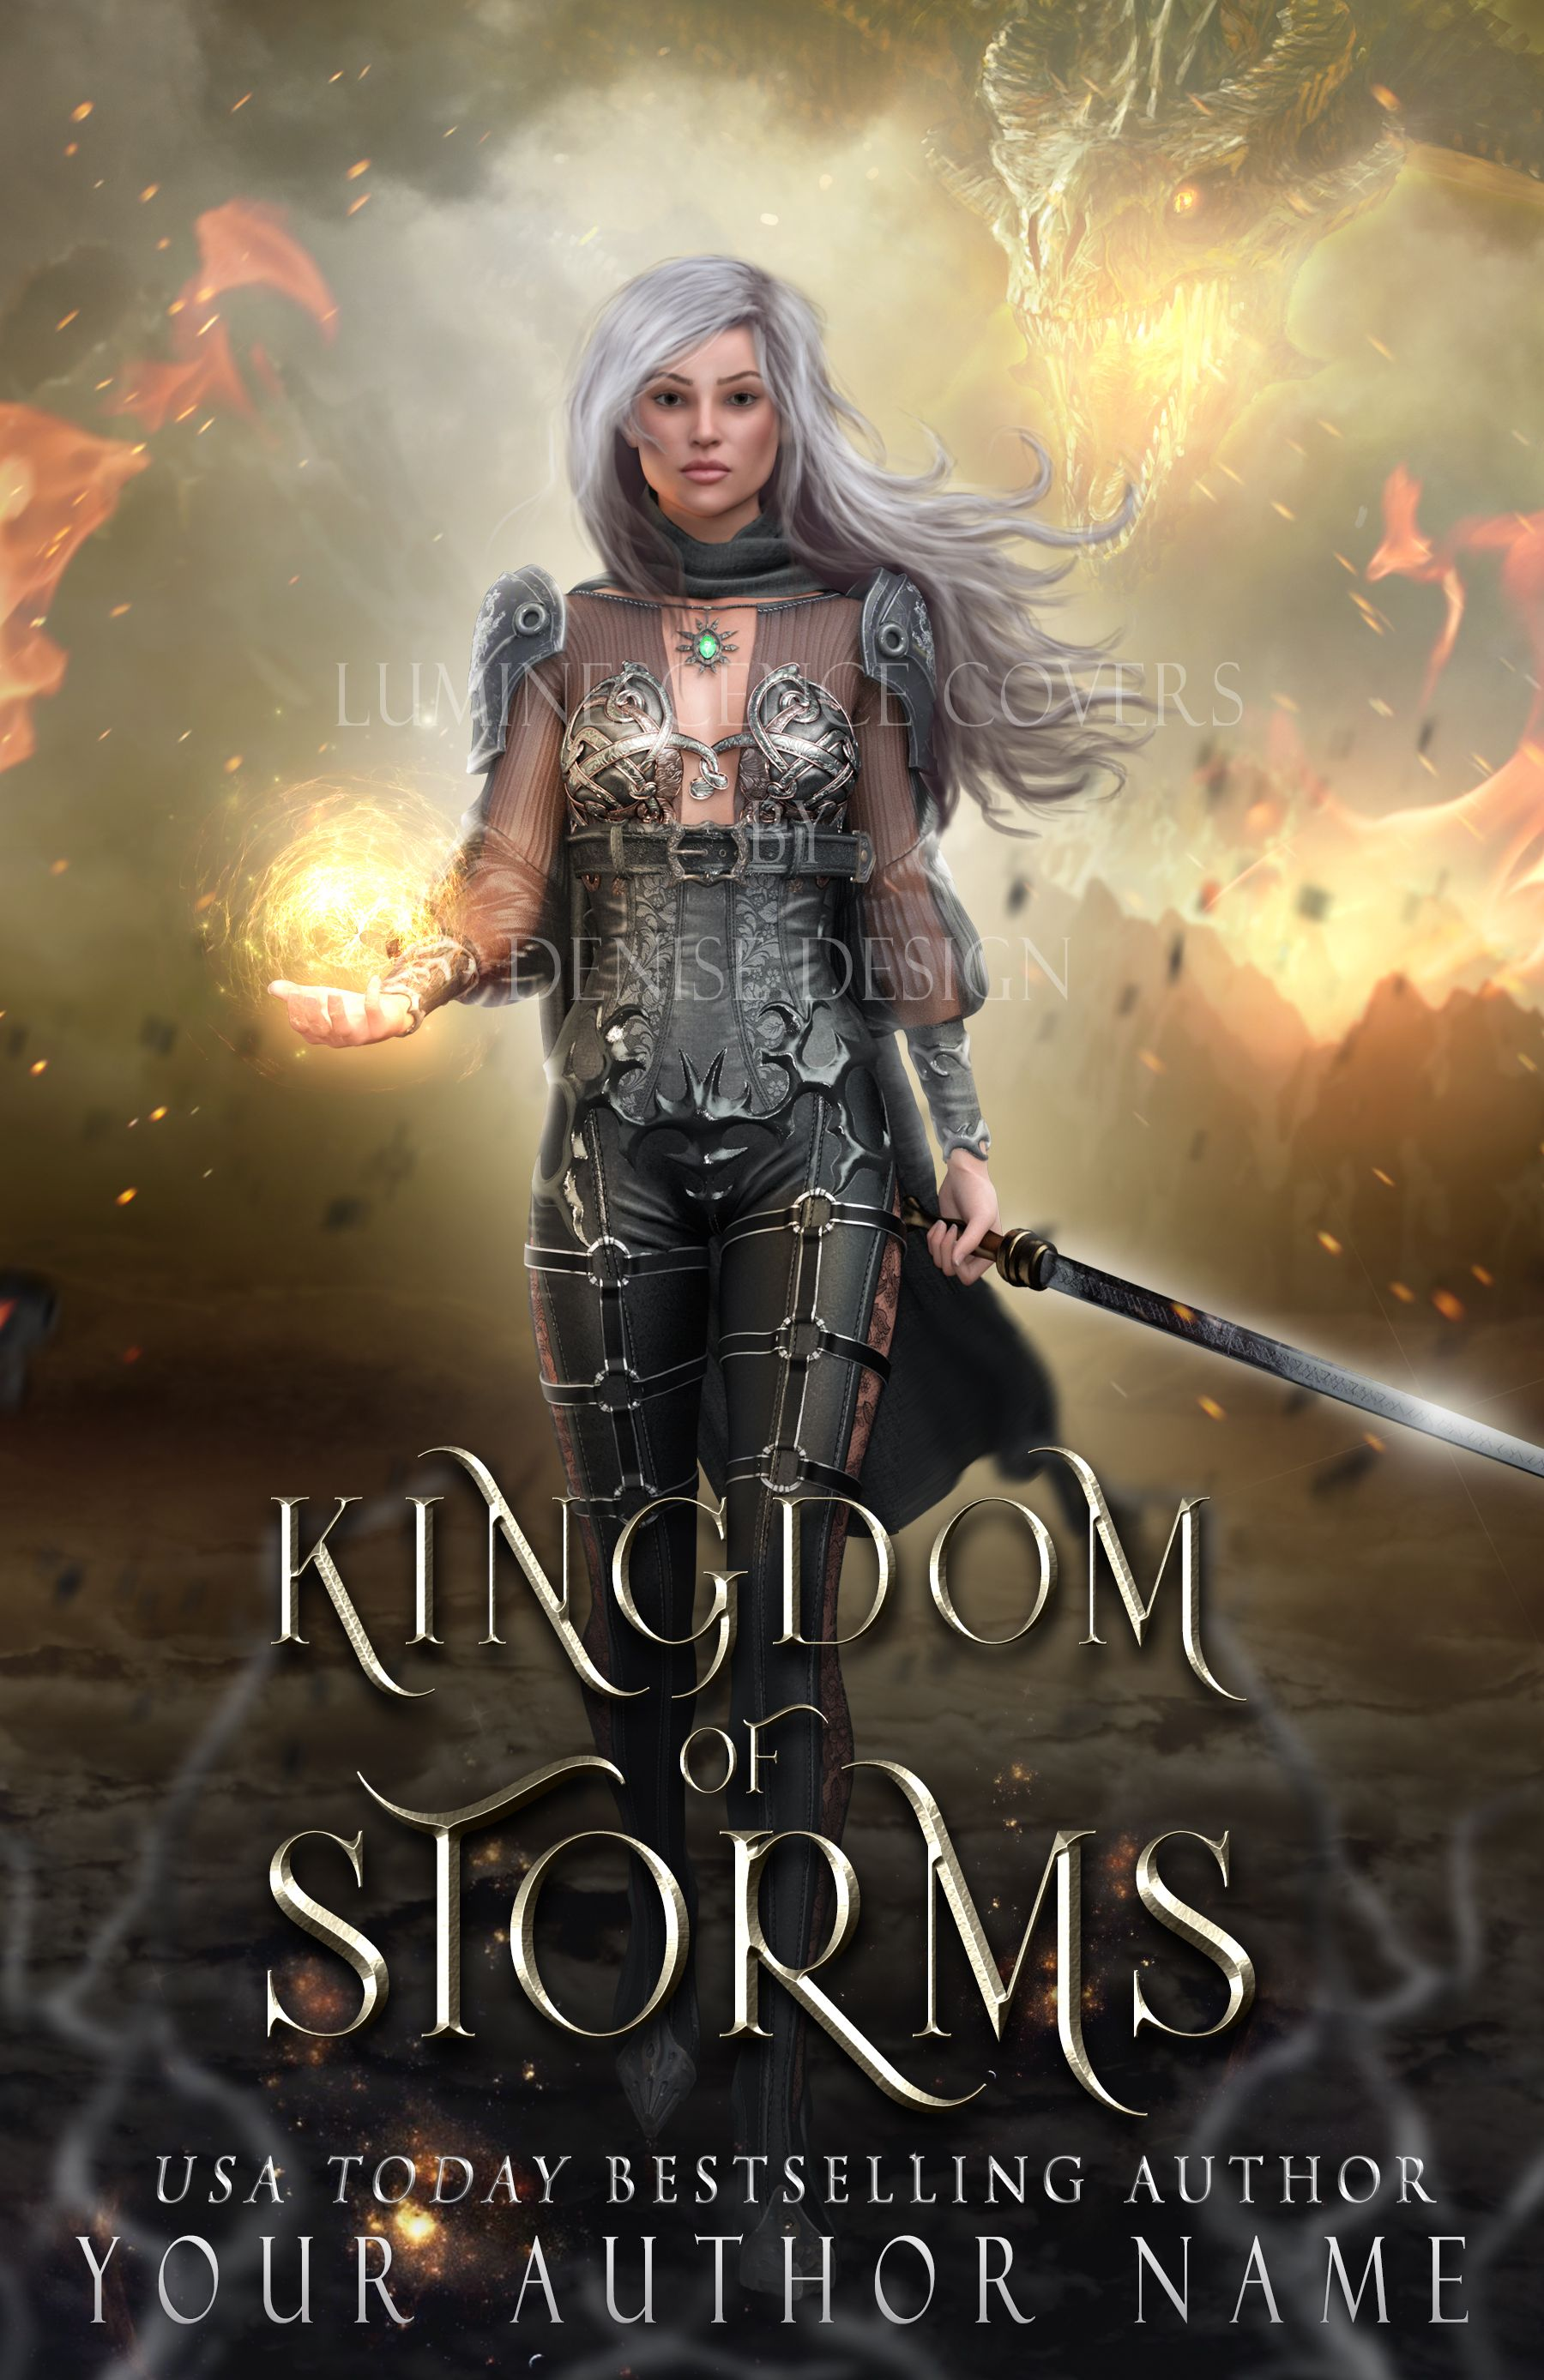 Premade and custom book cover design by Luminescence Covers